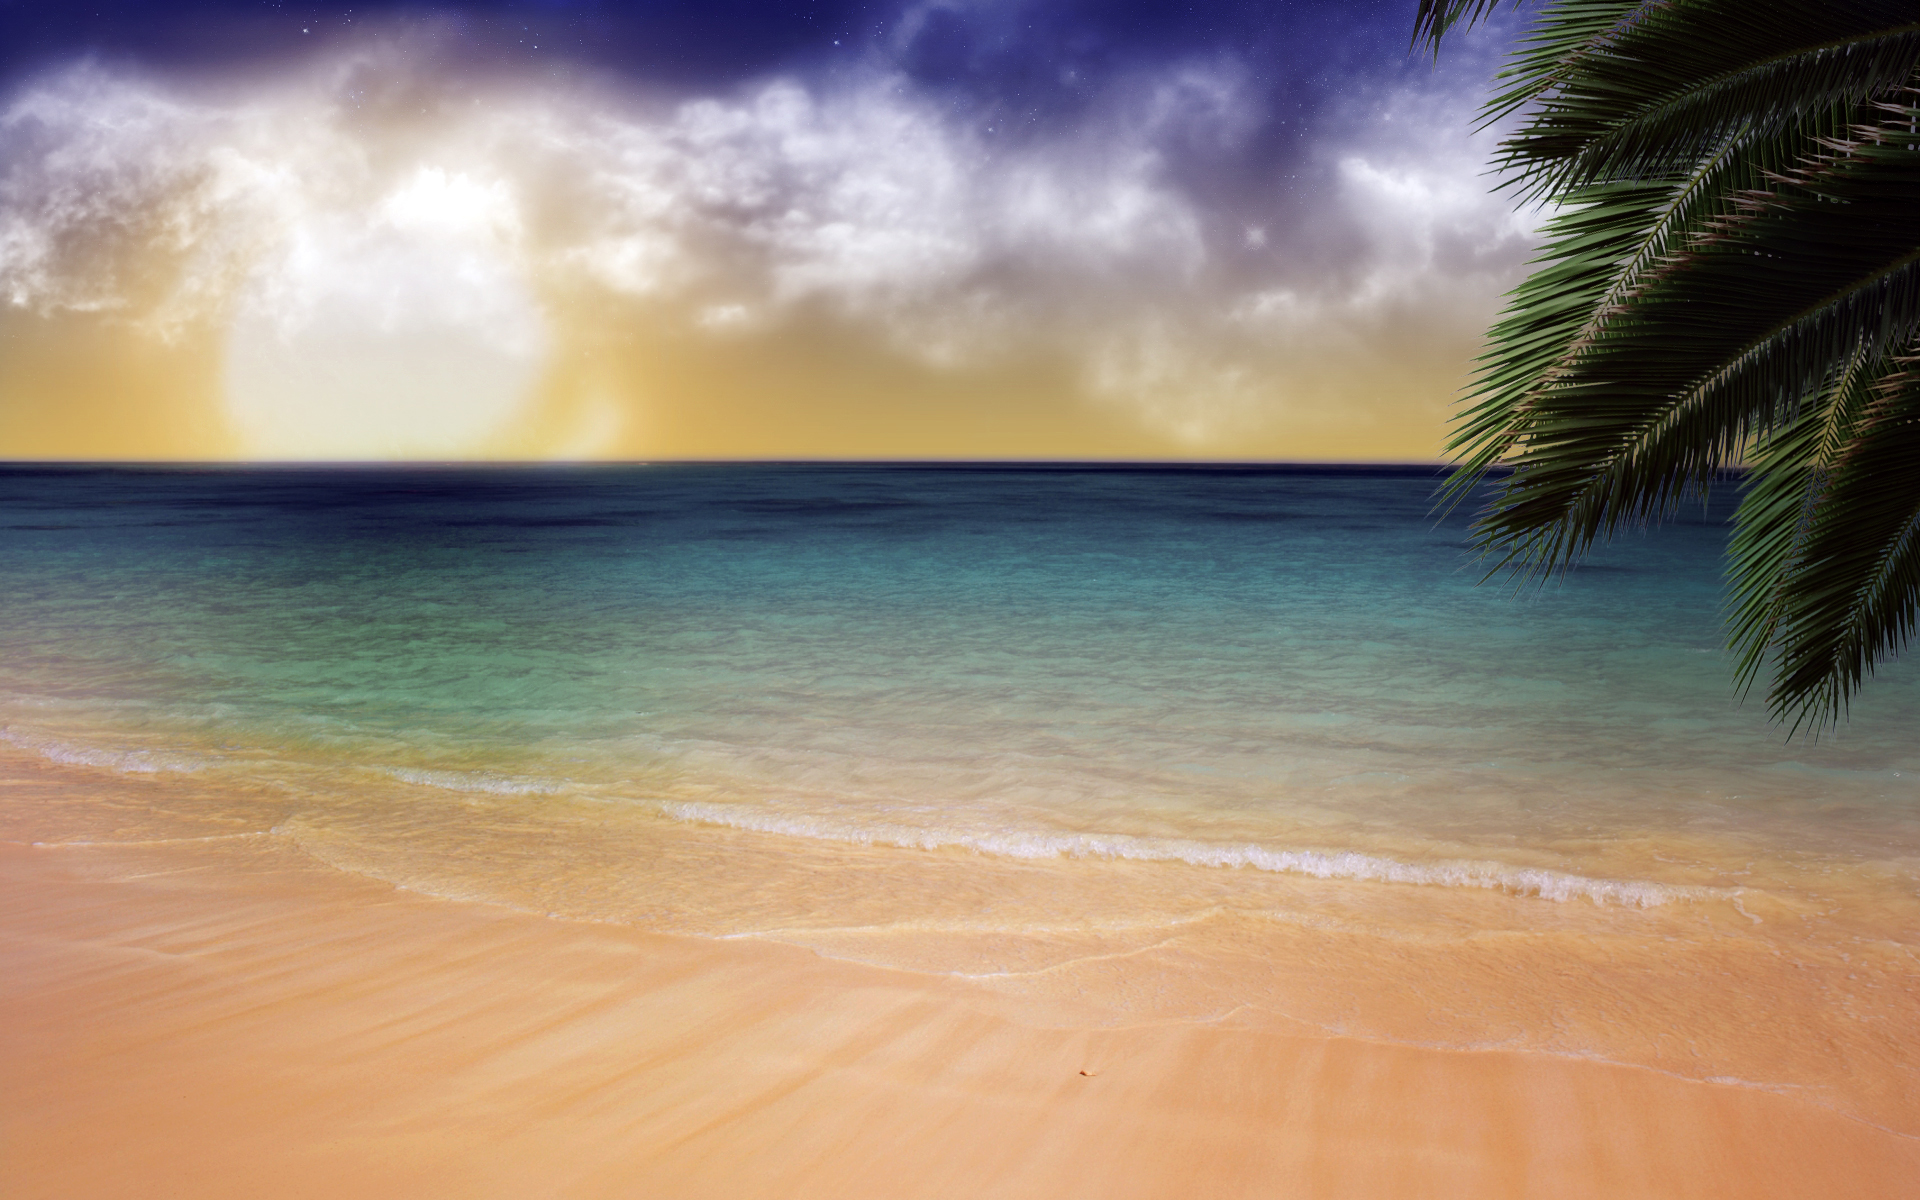 Earth - Ocean  - Water - Clouds - Beach - Earth - Artistic Wallpaper